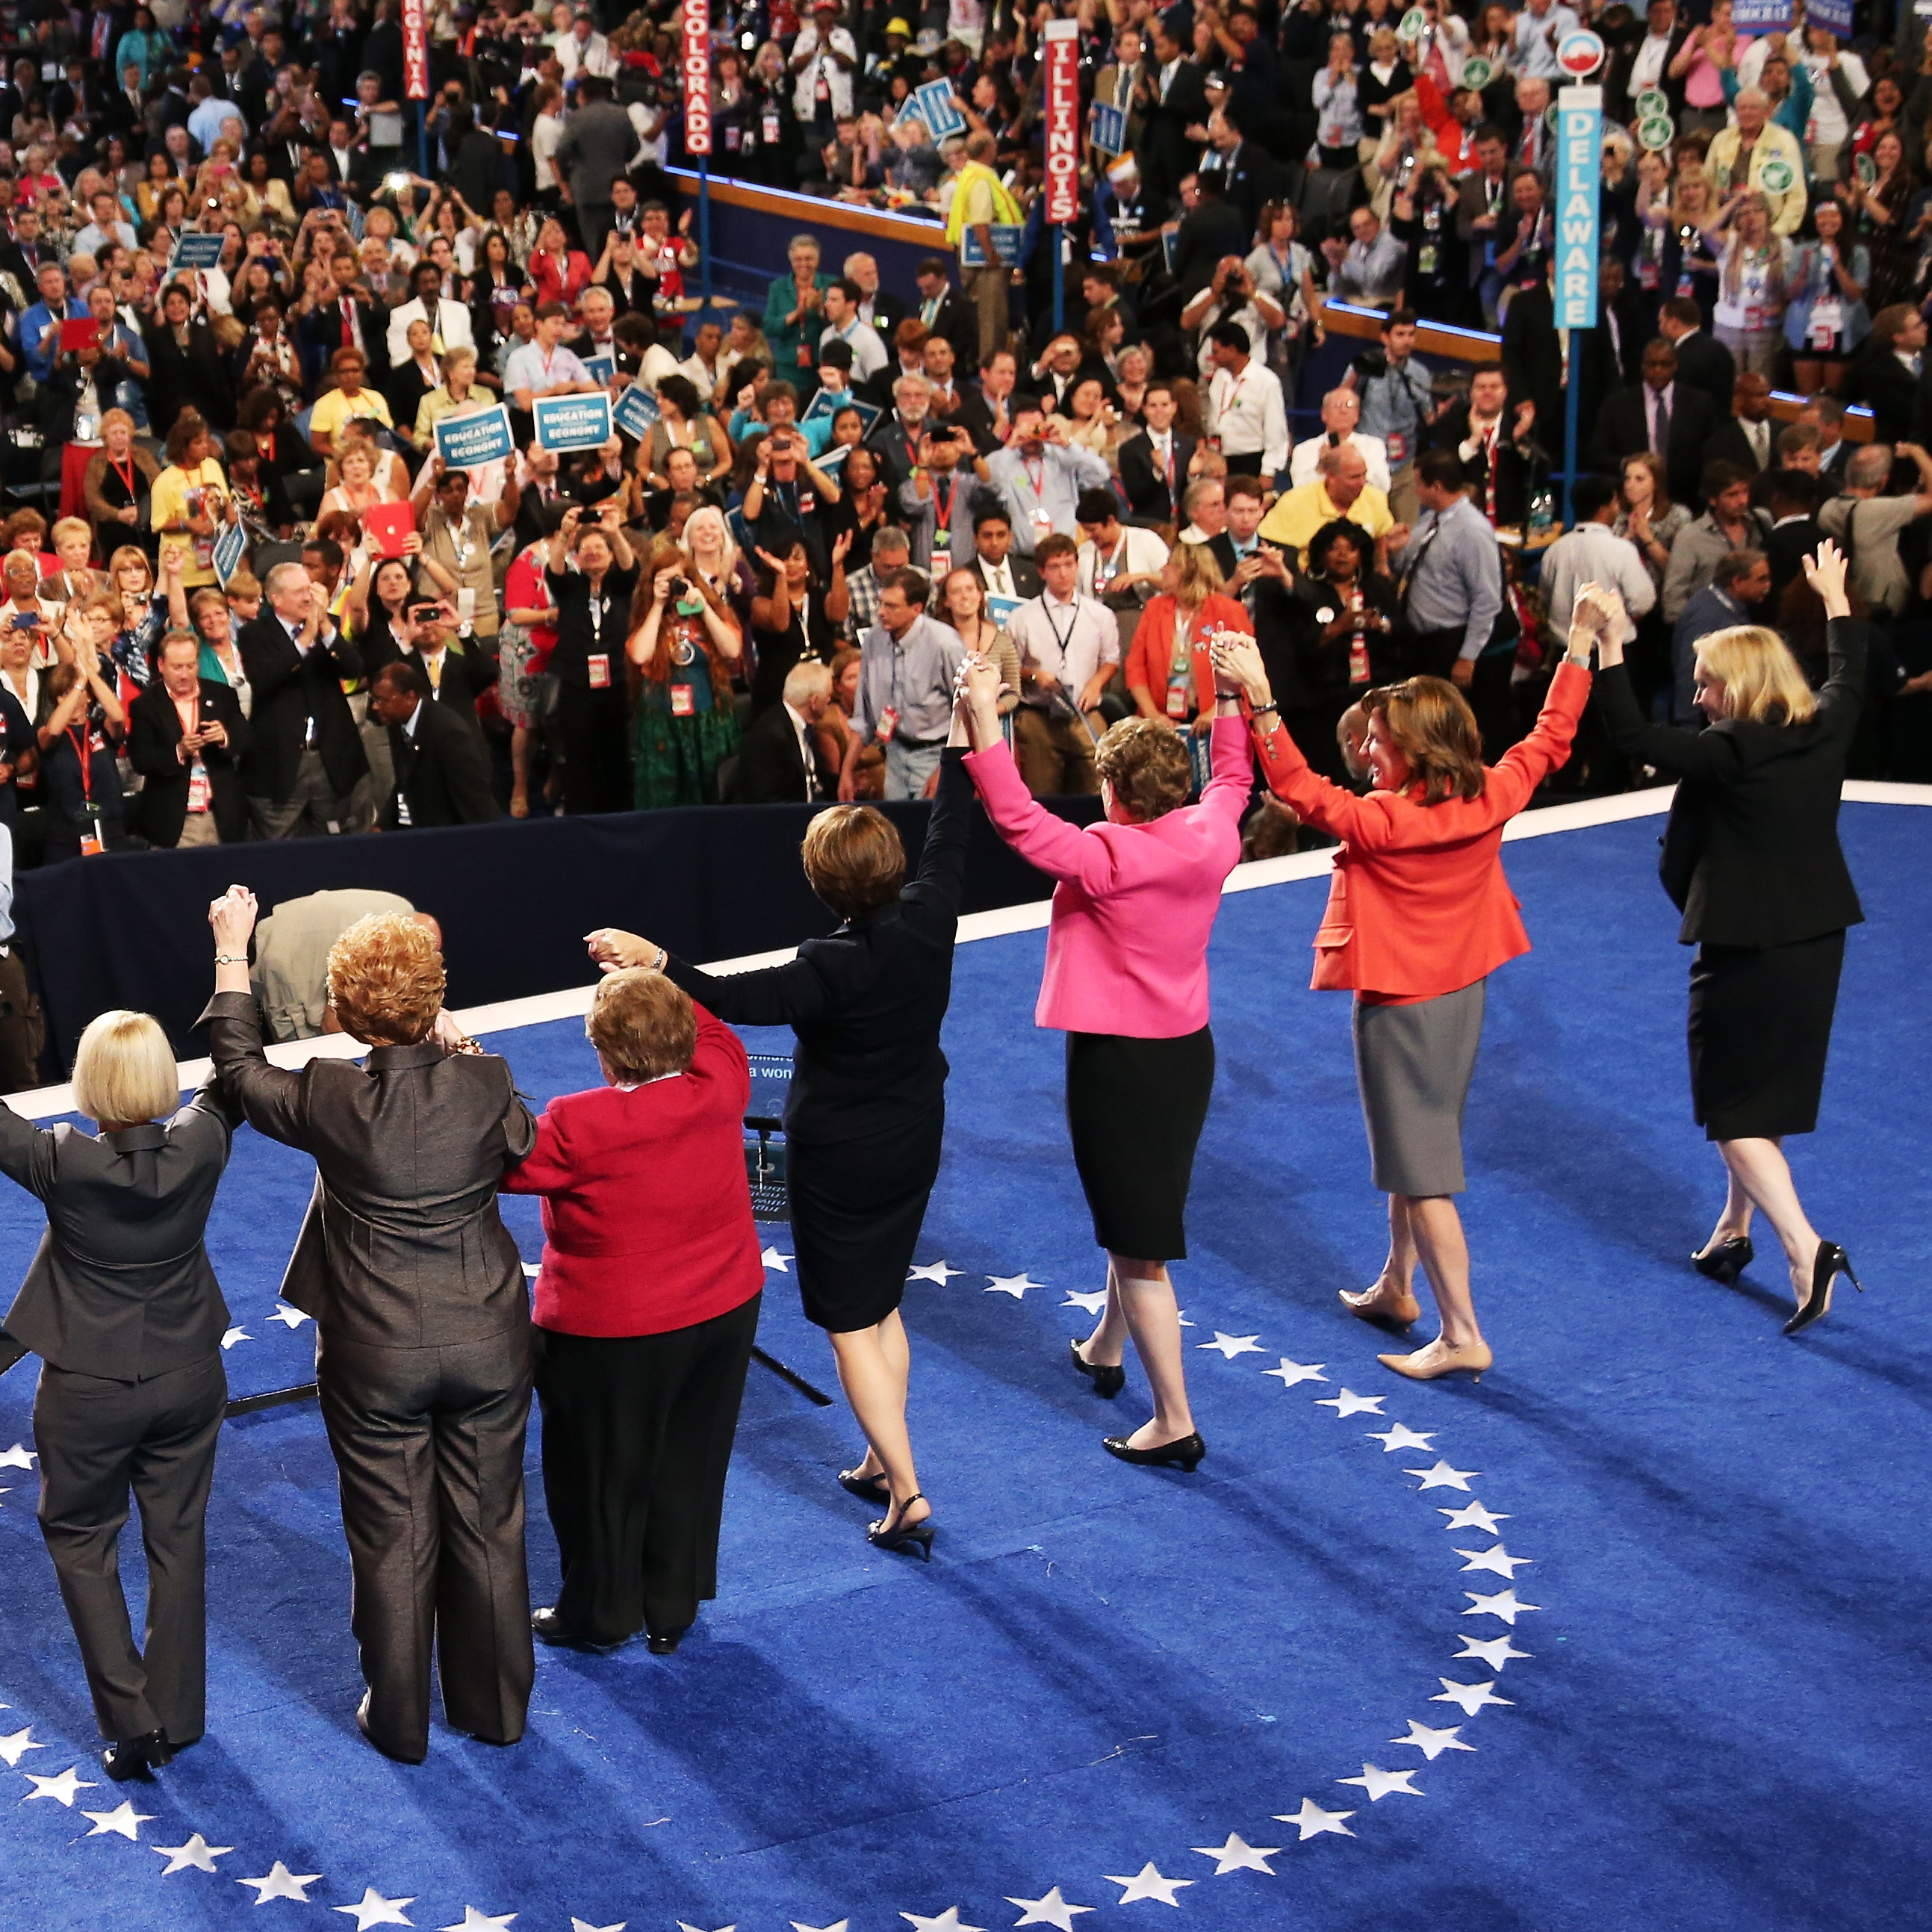 Maryland Sen. Barbara Mikulski (center) is joined by other U.S. female senators as a show of solidarity during Day 2 of the Democratic National Convention at Time Warner Cable Arena in Charlotte, N.C.